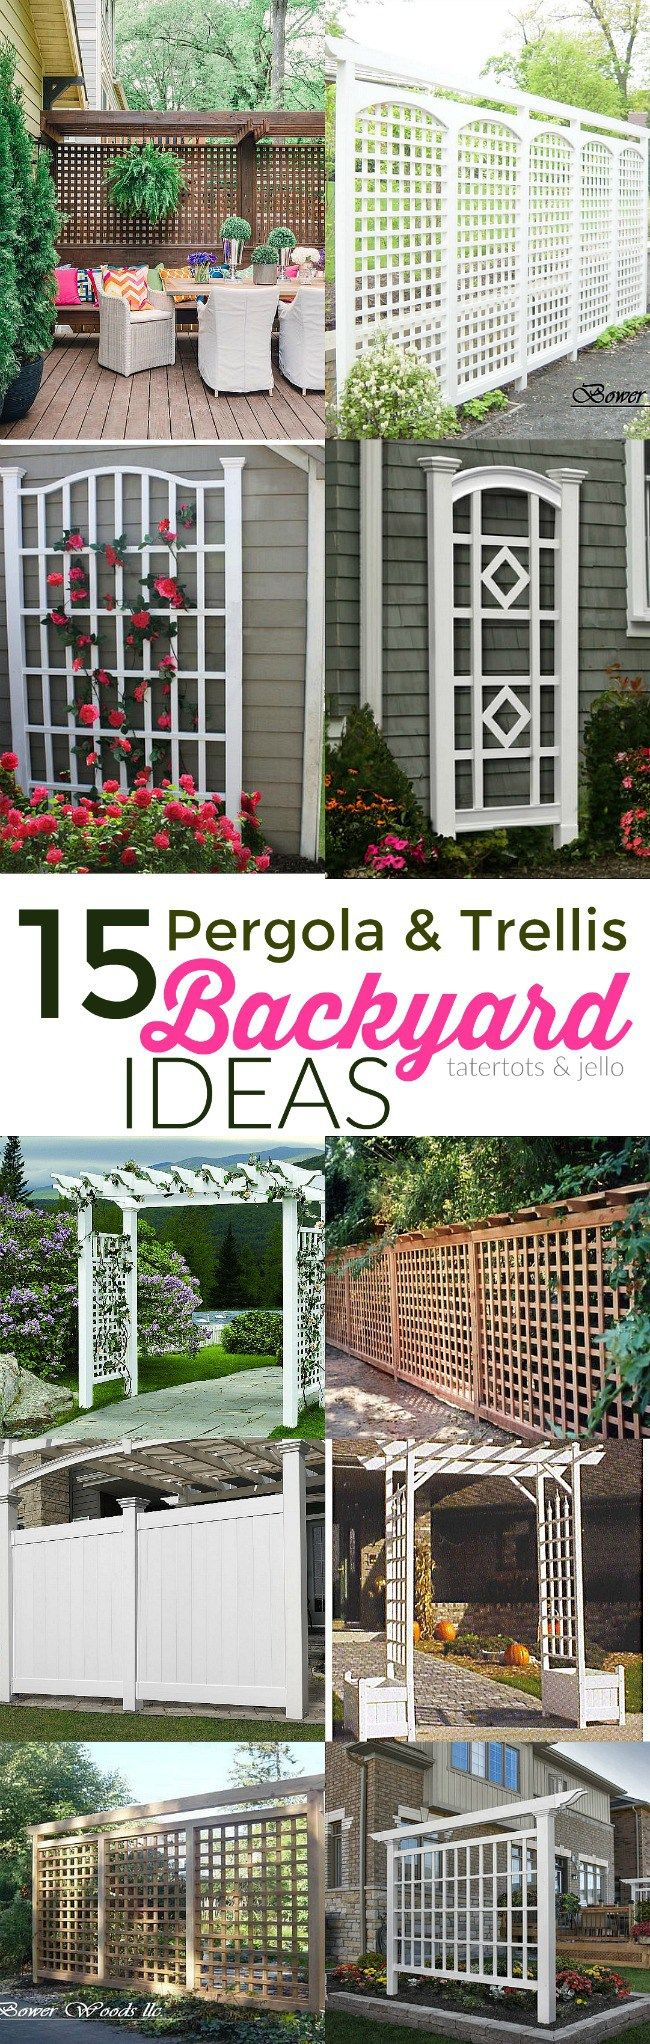 15 trellis and pergola backyard ideas tatertots and jello